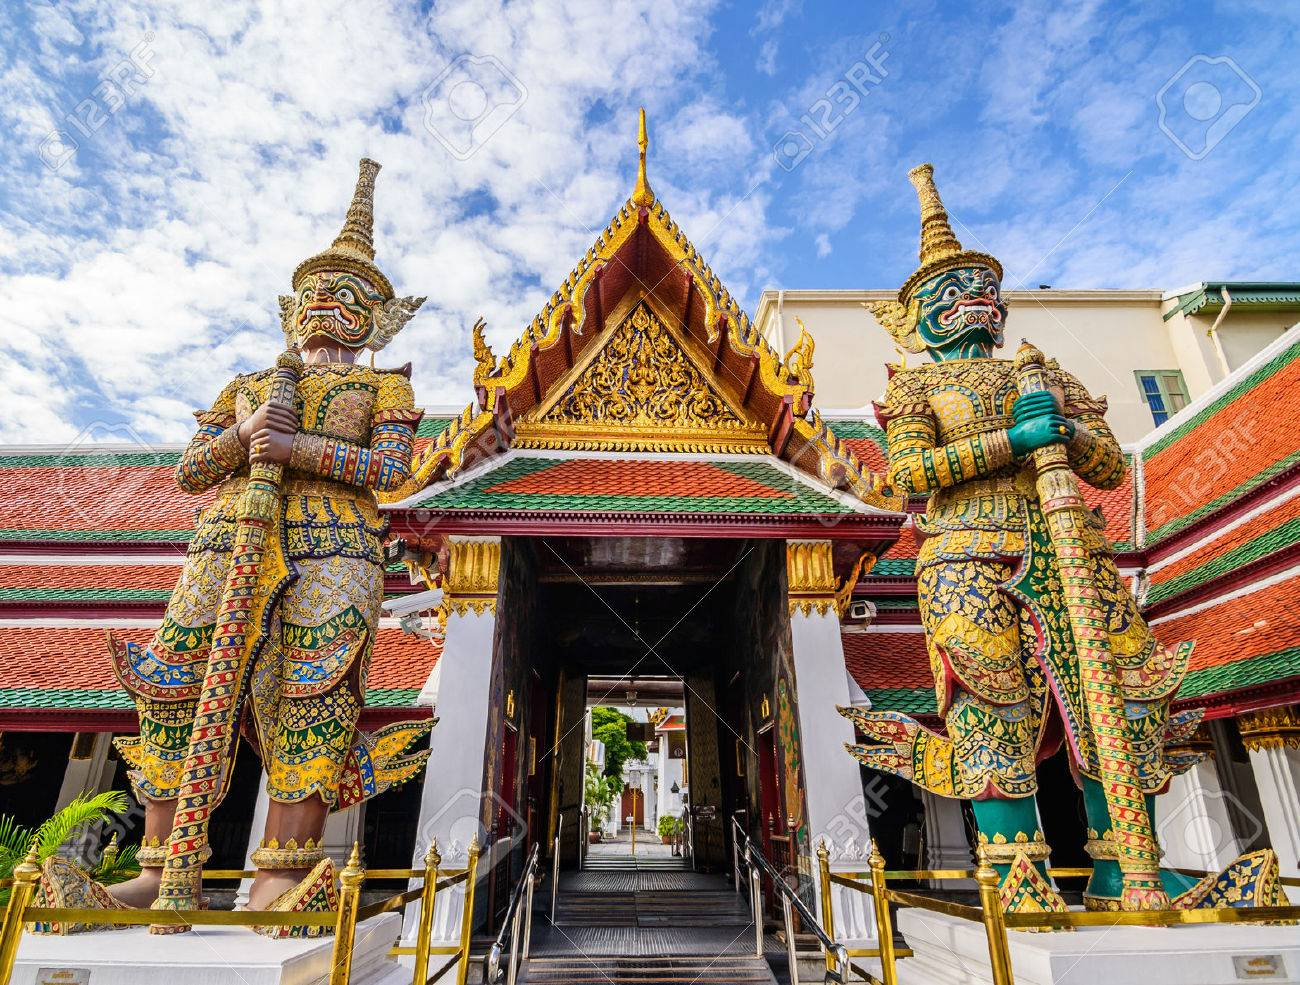 Giant statue at Wat pra kaew, Grand palace ,Bangkok,Thailand. Stock Photo - 43863838